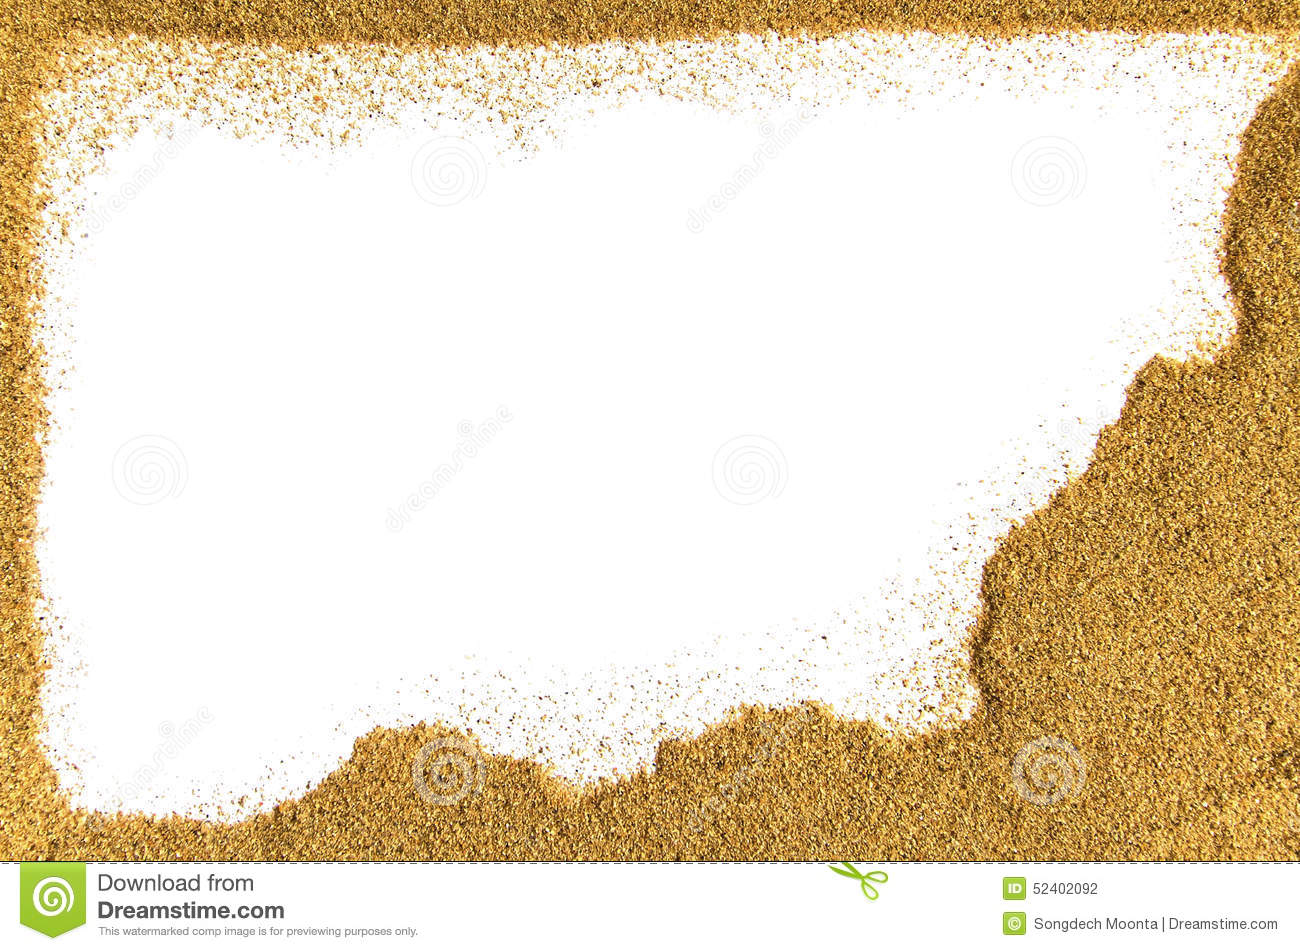 Sand Border Stock Photo - Image: 52402092